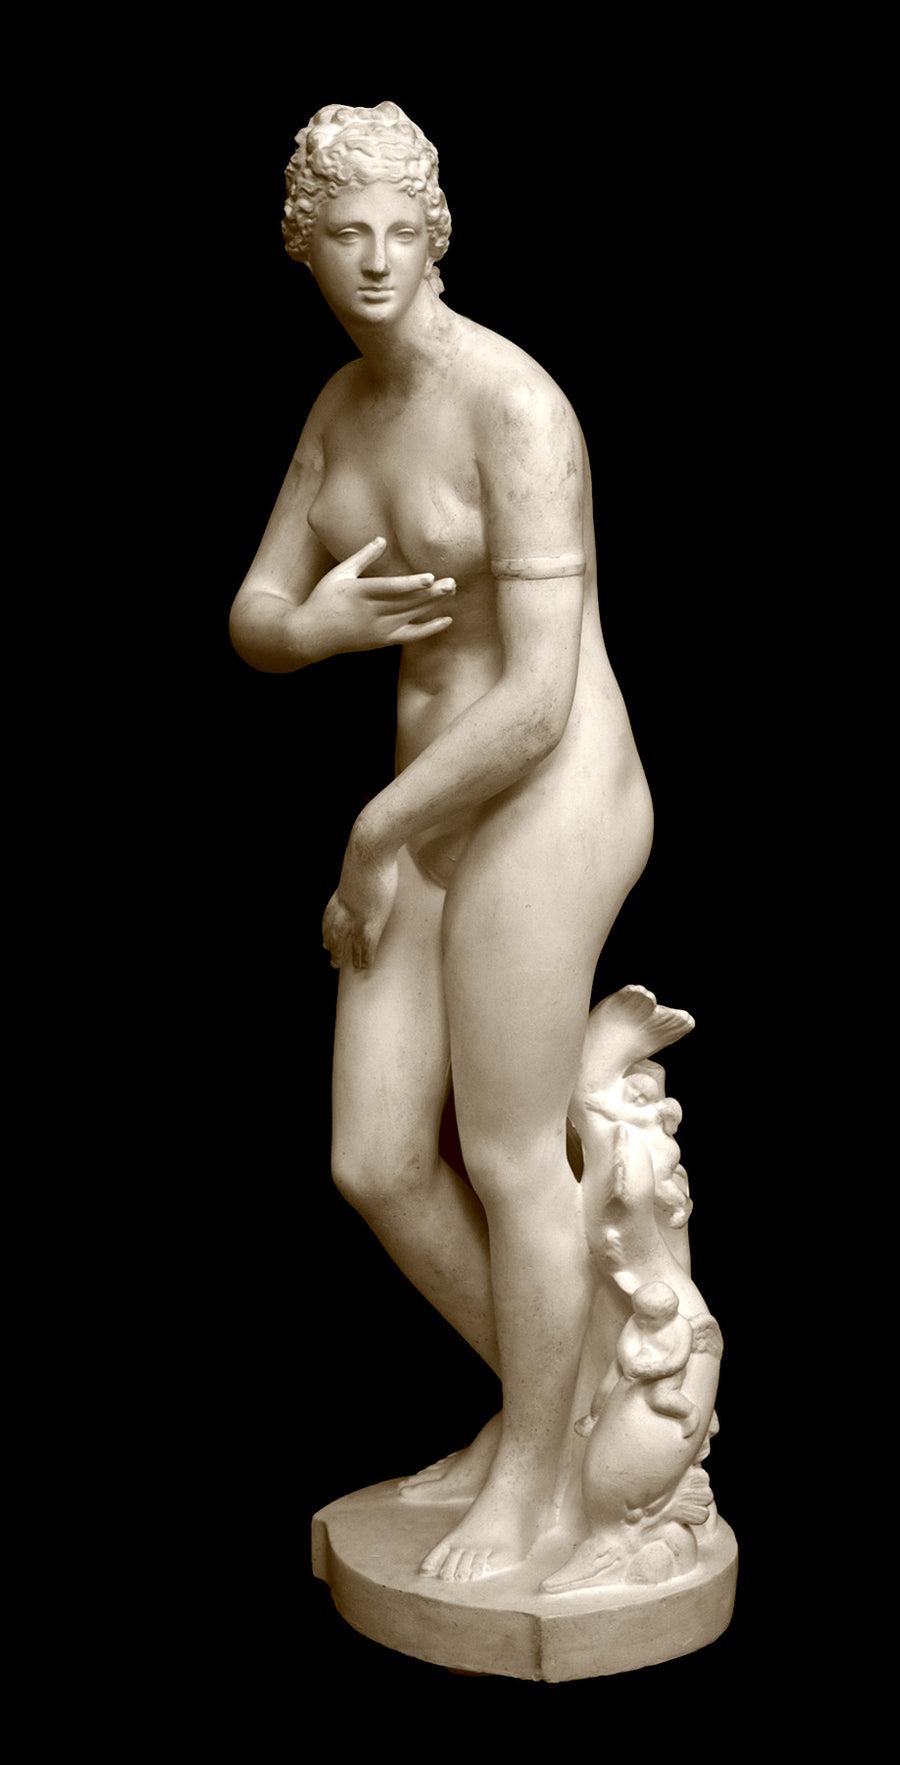 photo of plaster cast sculpture of Venus standing nude with two putti riding a dolphin at her feet